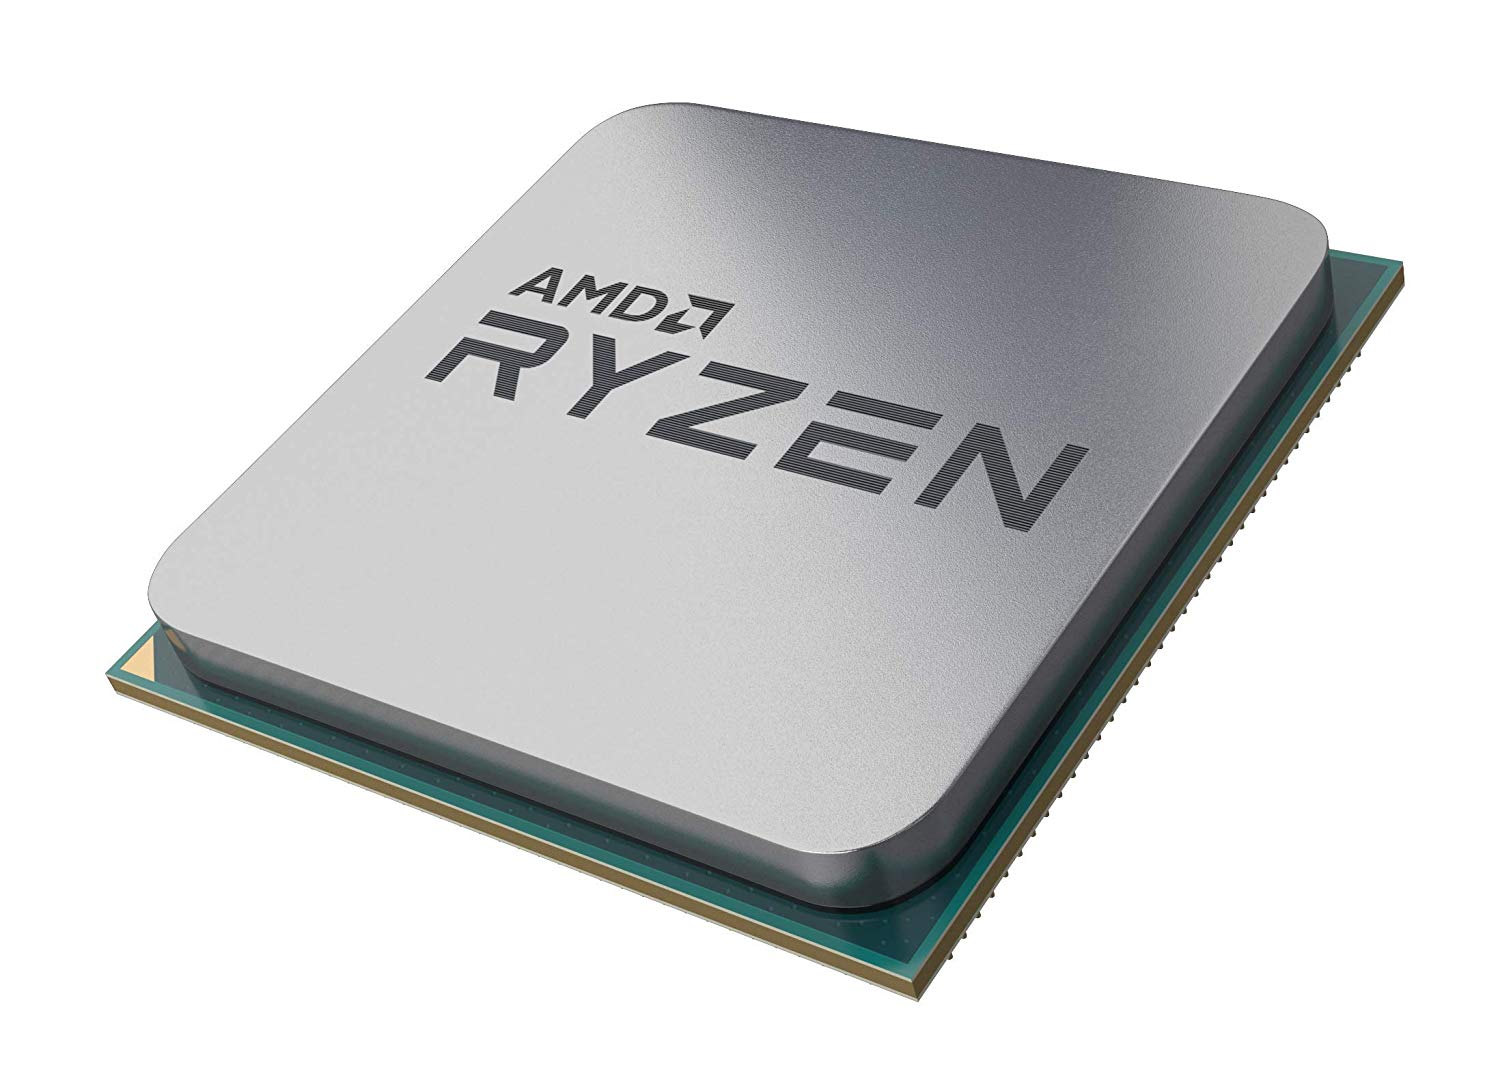 How To Build A Budget Amd Gaming Pc In 2020 Player One